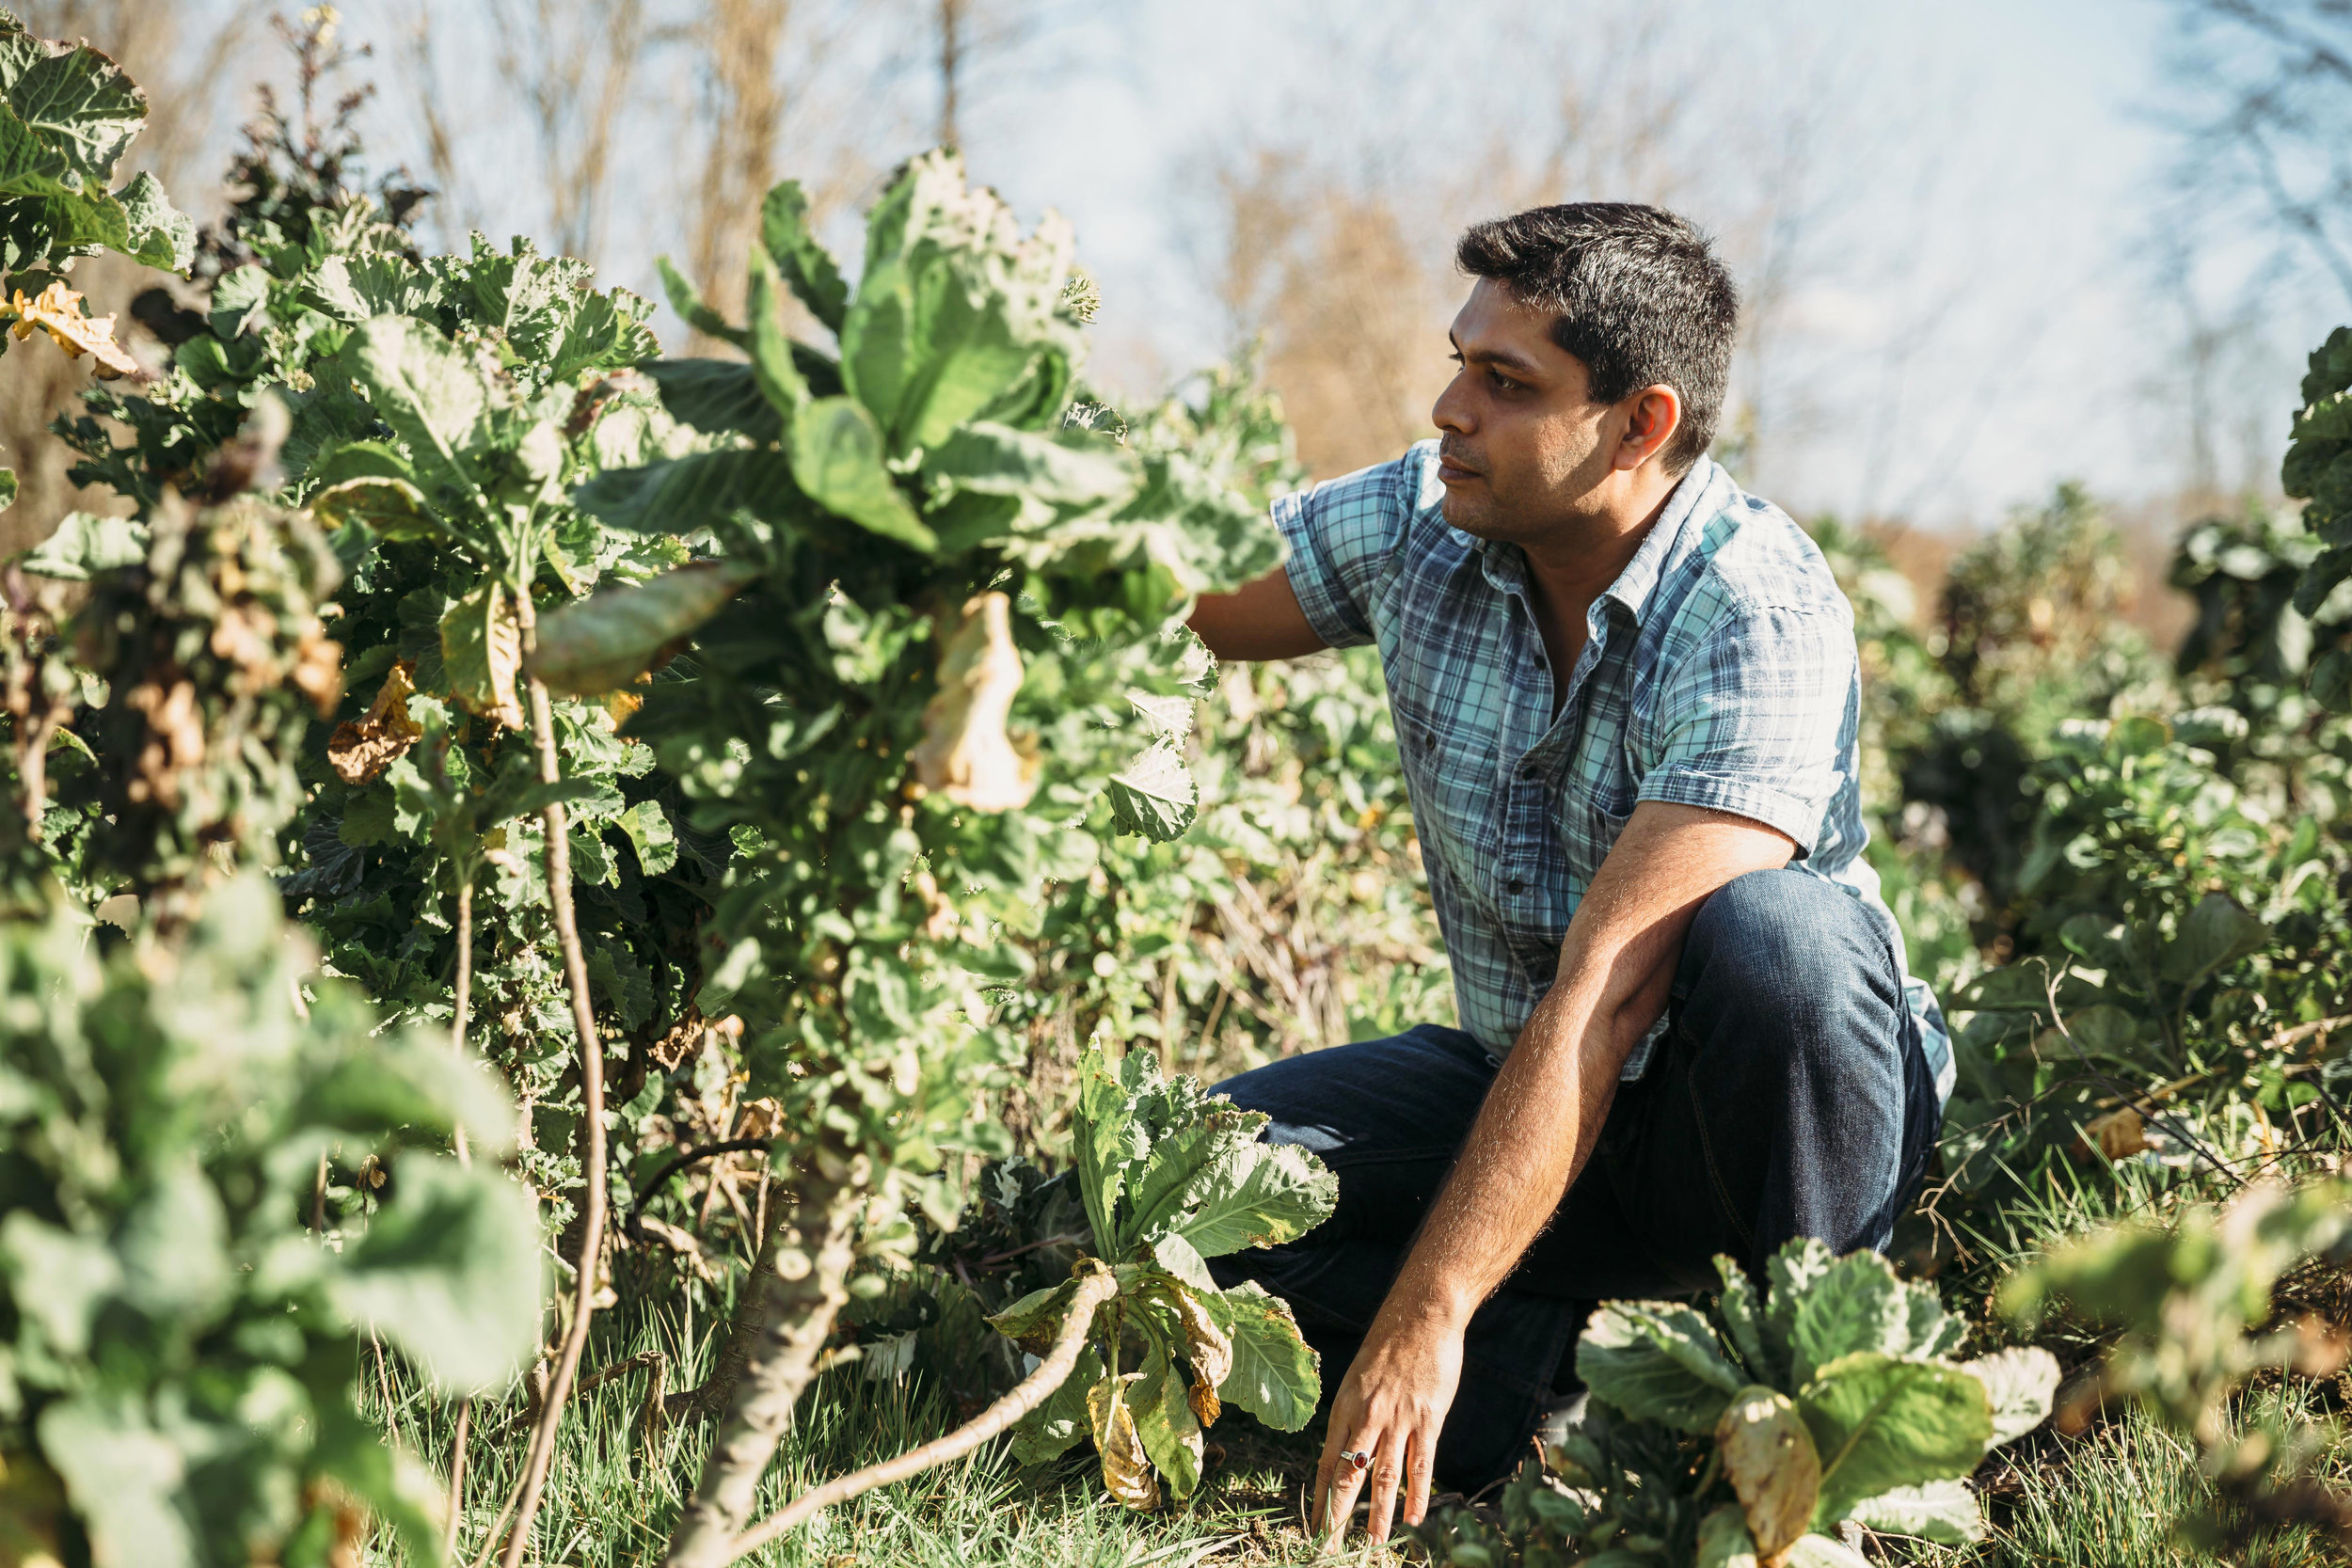 FarmBeats  - Alright. This was a fun one. Not because I captured the most artistic photos on the planet, but because the cause behind this photo is inspiring. Ranveer Chandra is a researcher at Microsoft Research working on a project called  FarmBeats . The project is focused on bringing AI to farms so famers can be more productive, put more money in their pockets (farmers currently get screwed by regulations and politics) and increase food supply for a world whose demand is out pacing supply. His work has caught the ears of the Bill and Melinda Gates foundation and inspired substantial interest in India and other developing countries desperate to increase food supply.